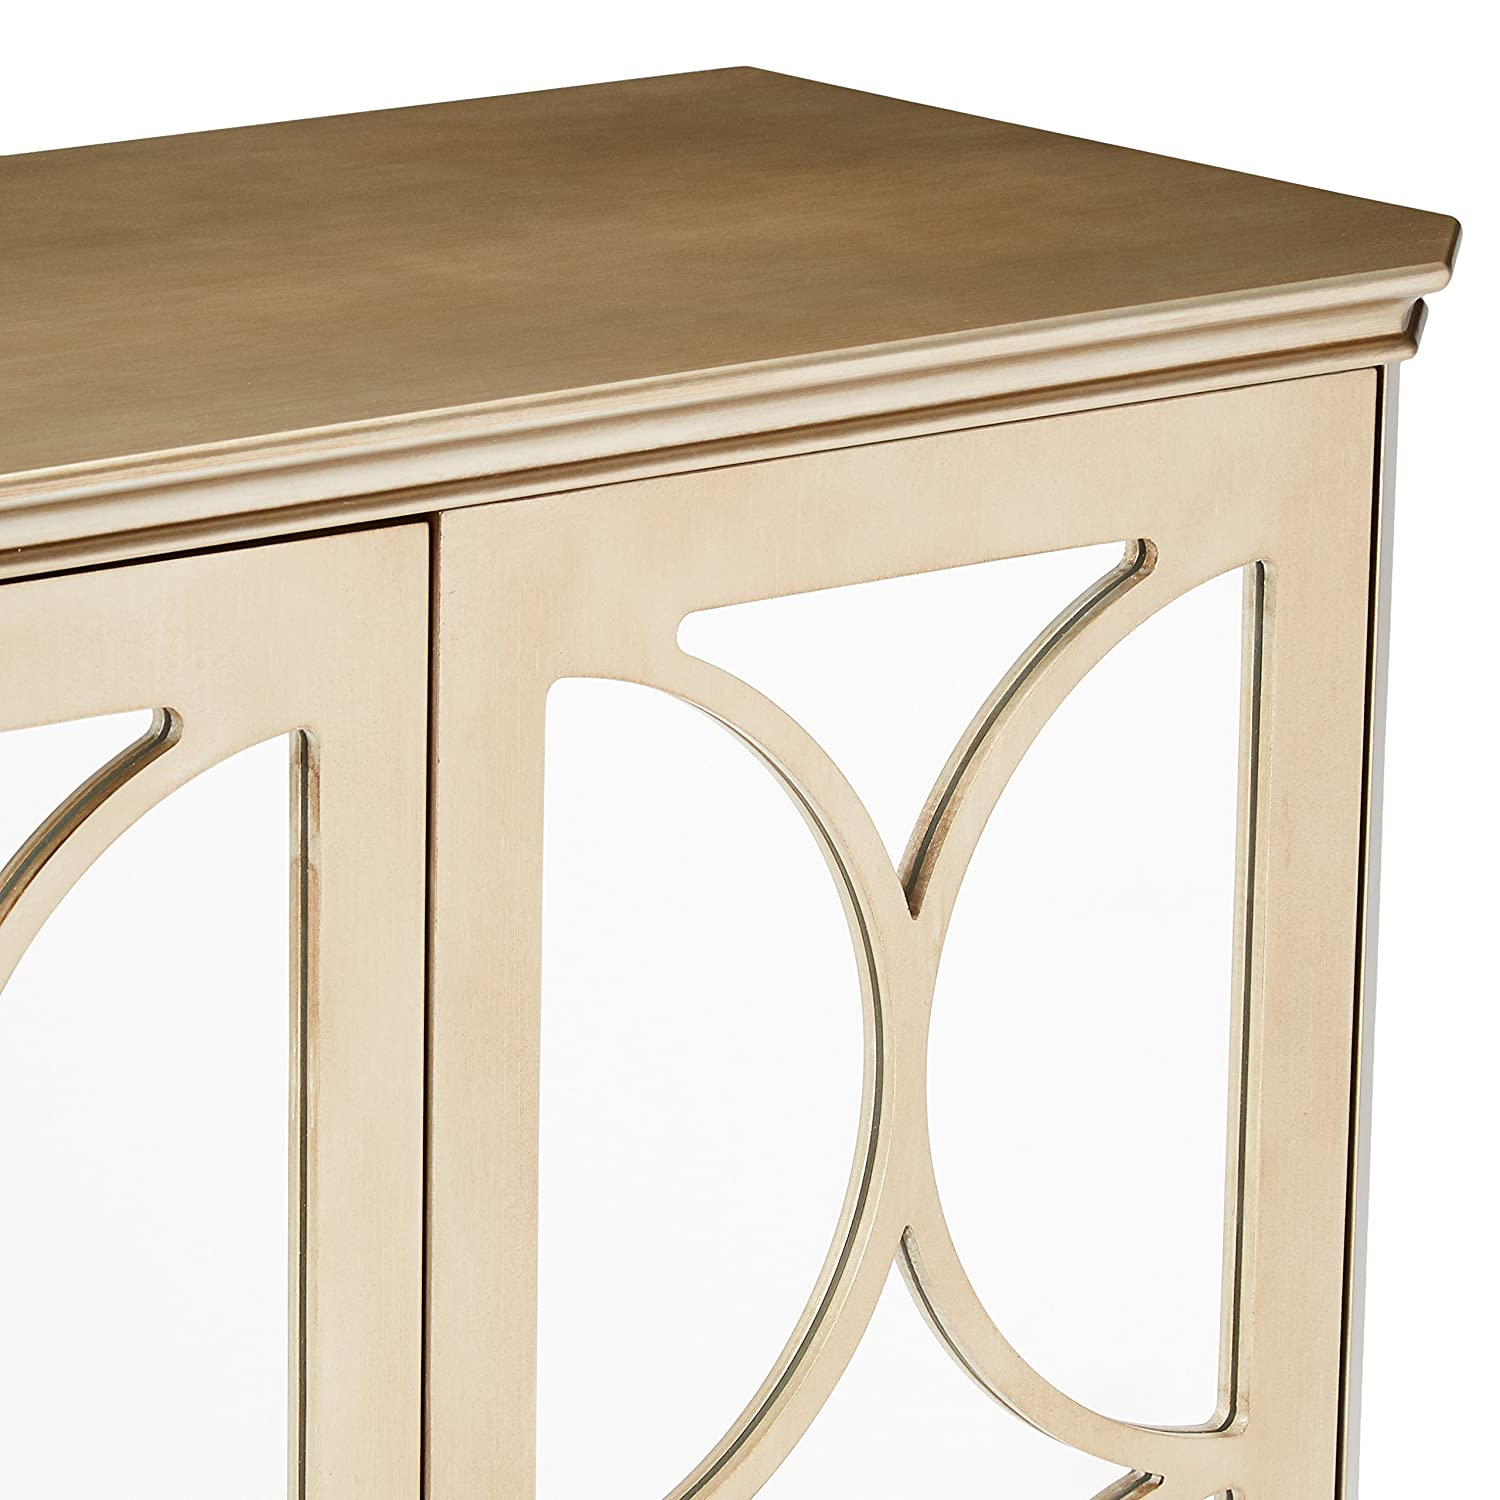 Mirrored Doors Kings Brand Furniture Kings Brand Gold Finish Buffet Server Cabinet//Console Table